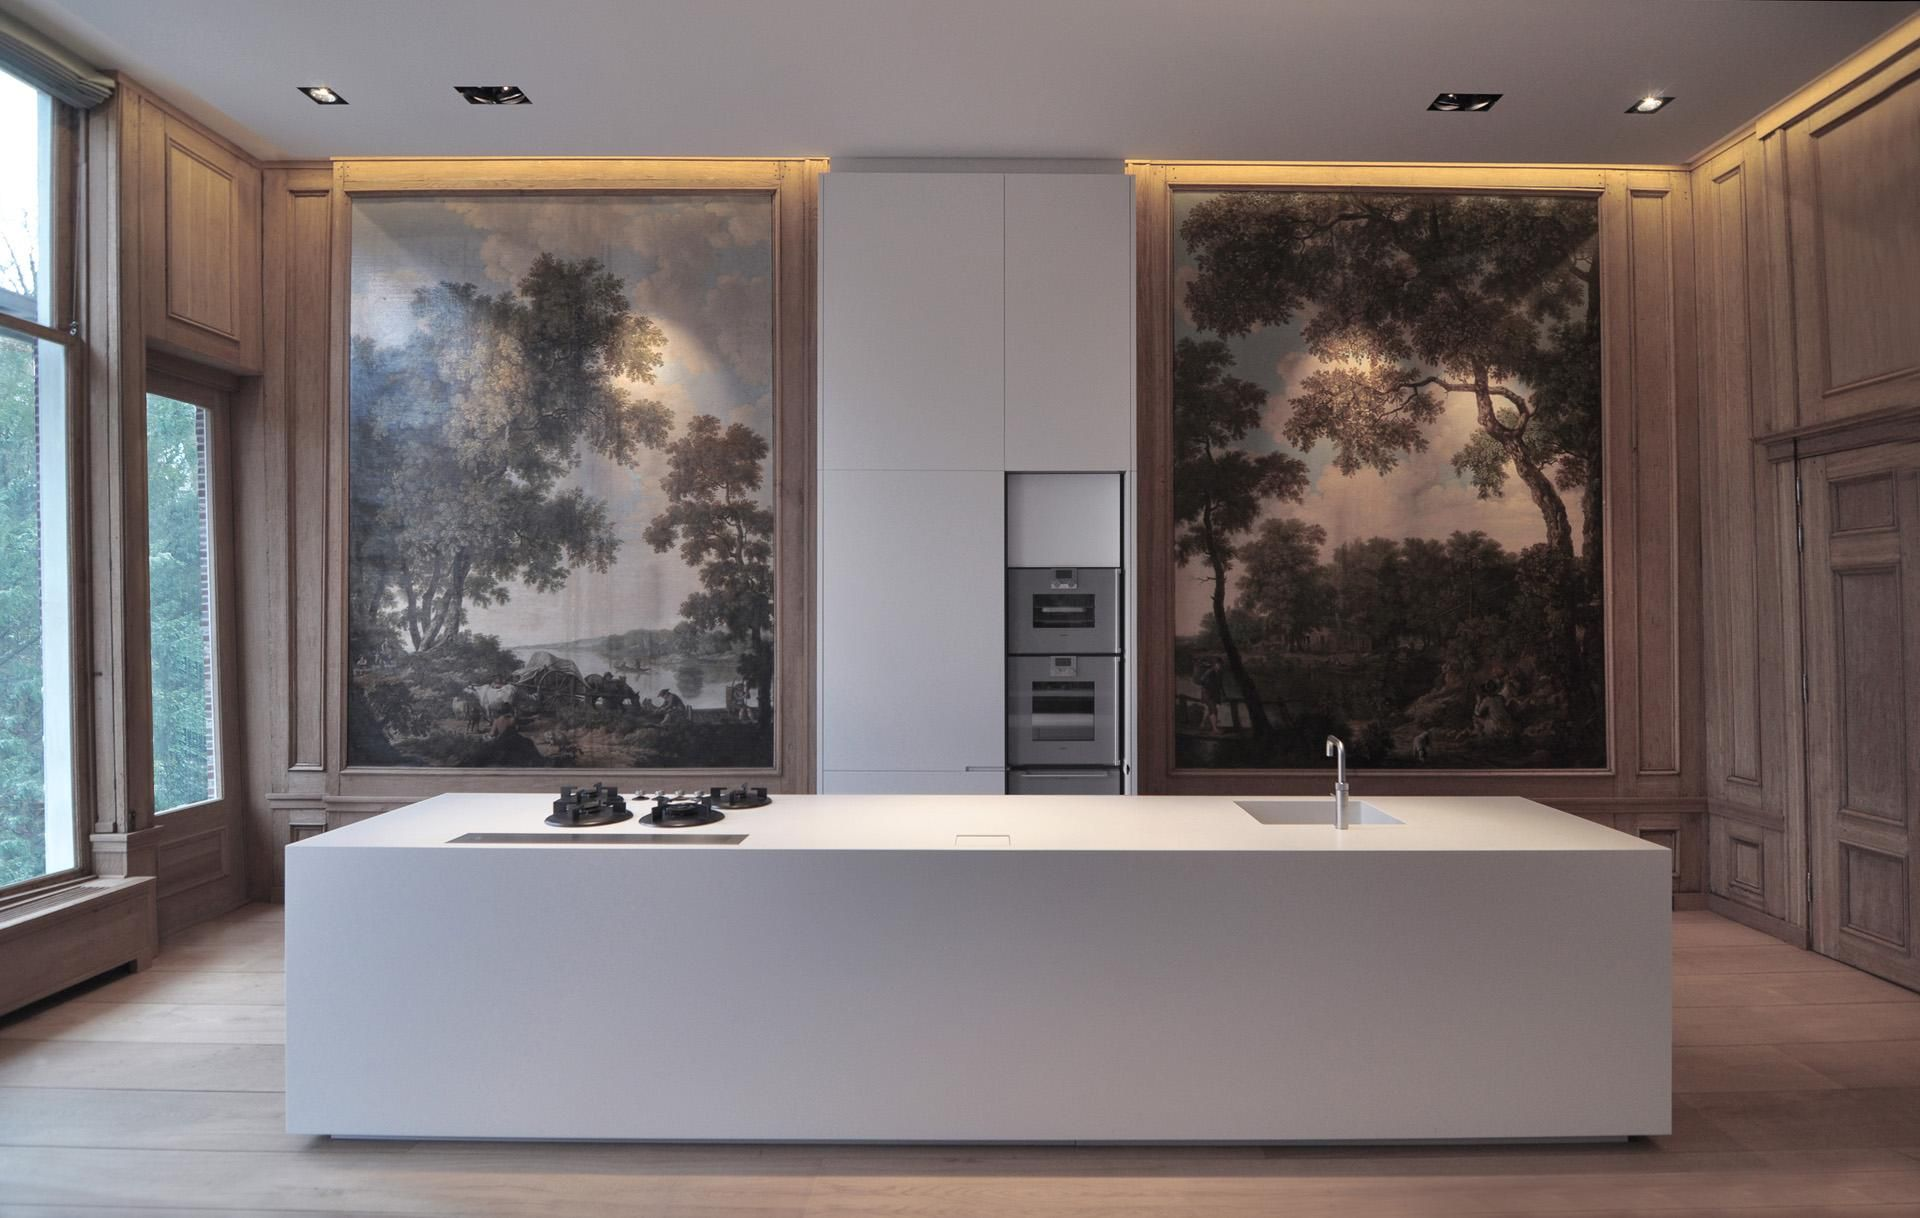 Modern classic kitchen in a herengracht canal house built in